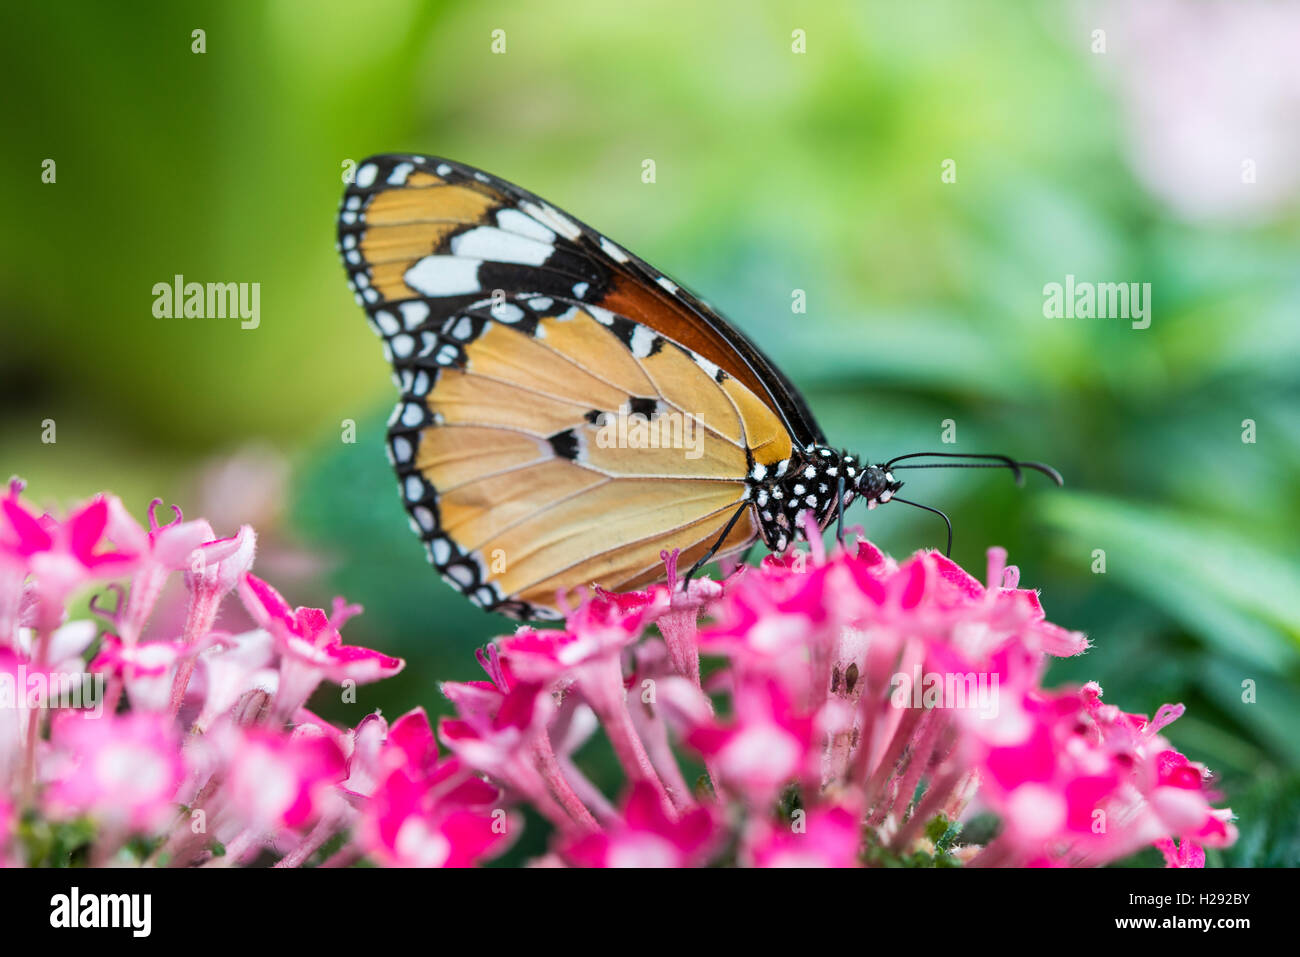 Monarch butterfly (Danaus plexippus) on pink flower, captive - Stock Image